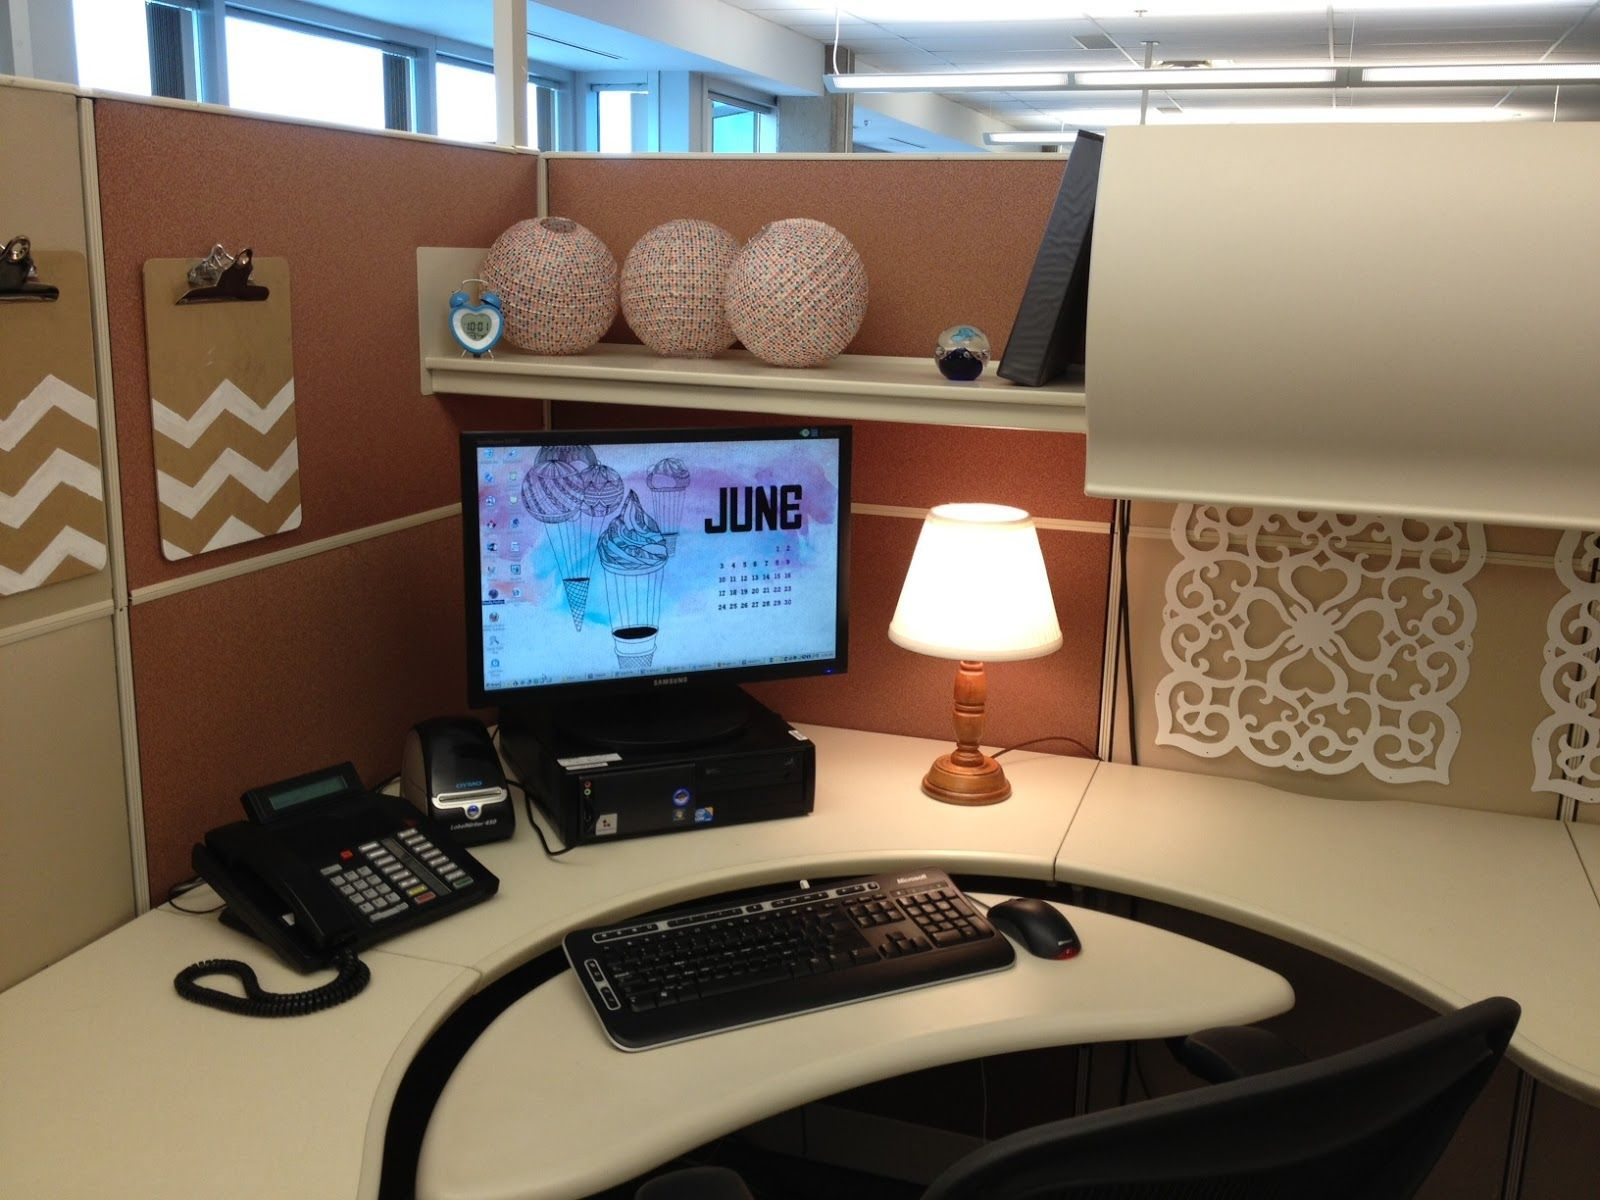 Cubicle Decorating Ideas Magnificent 20 Cubicle Decor Ideas To Make Your Office Style Work As Hard As Design Inspiration